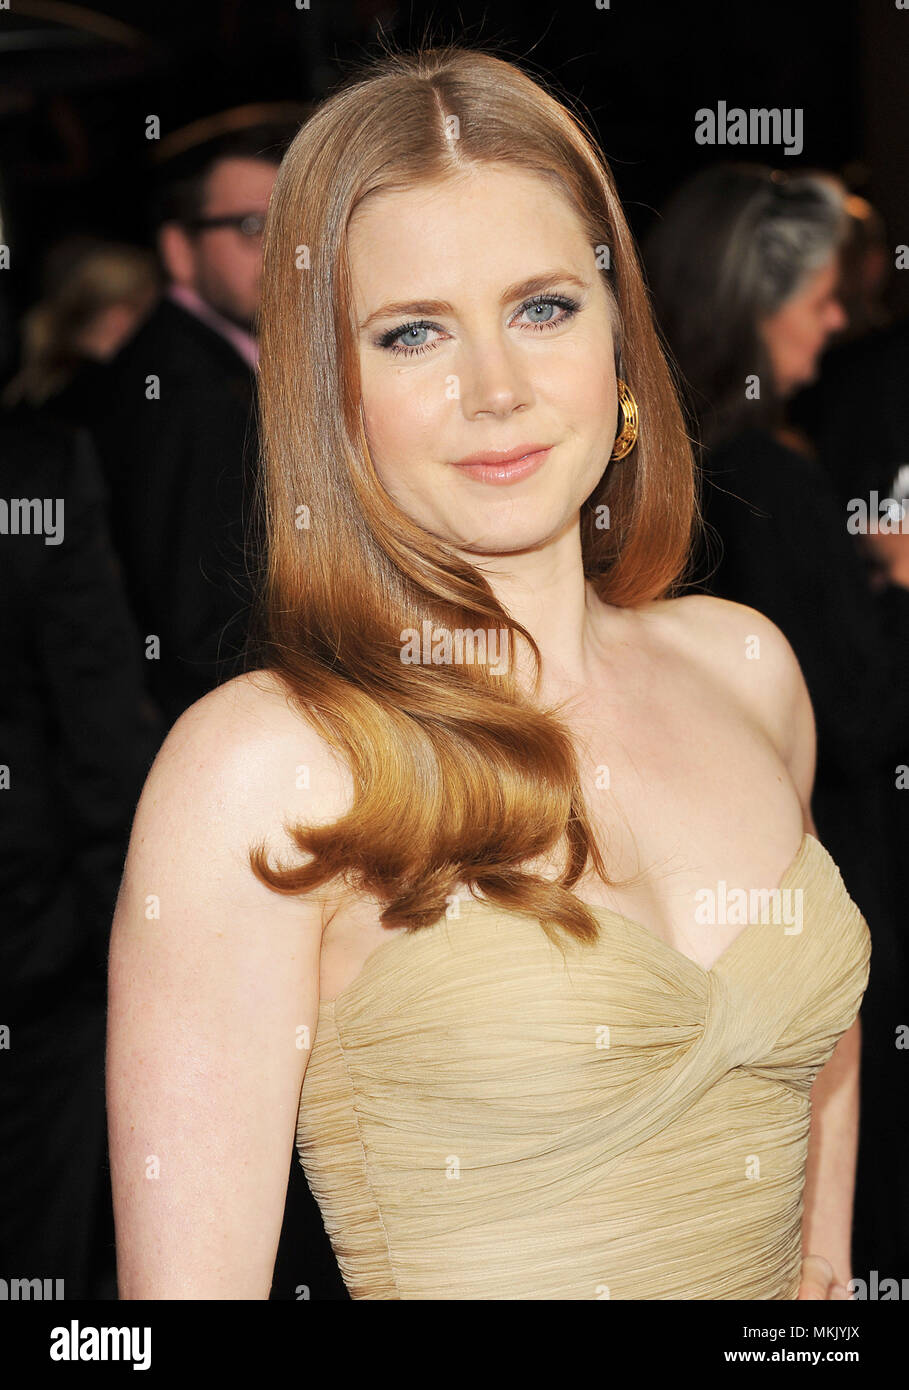 63rd Annual Dga Awards At The Kodak Theatre In Los Angeles Amy Adamsa Amy Adams 50 Red Carpet Event Vertical Usa Film Industry Celebrities Photography Bestof Arts Culture And Entertainment Topix Celebrities